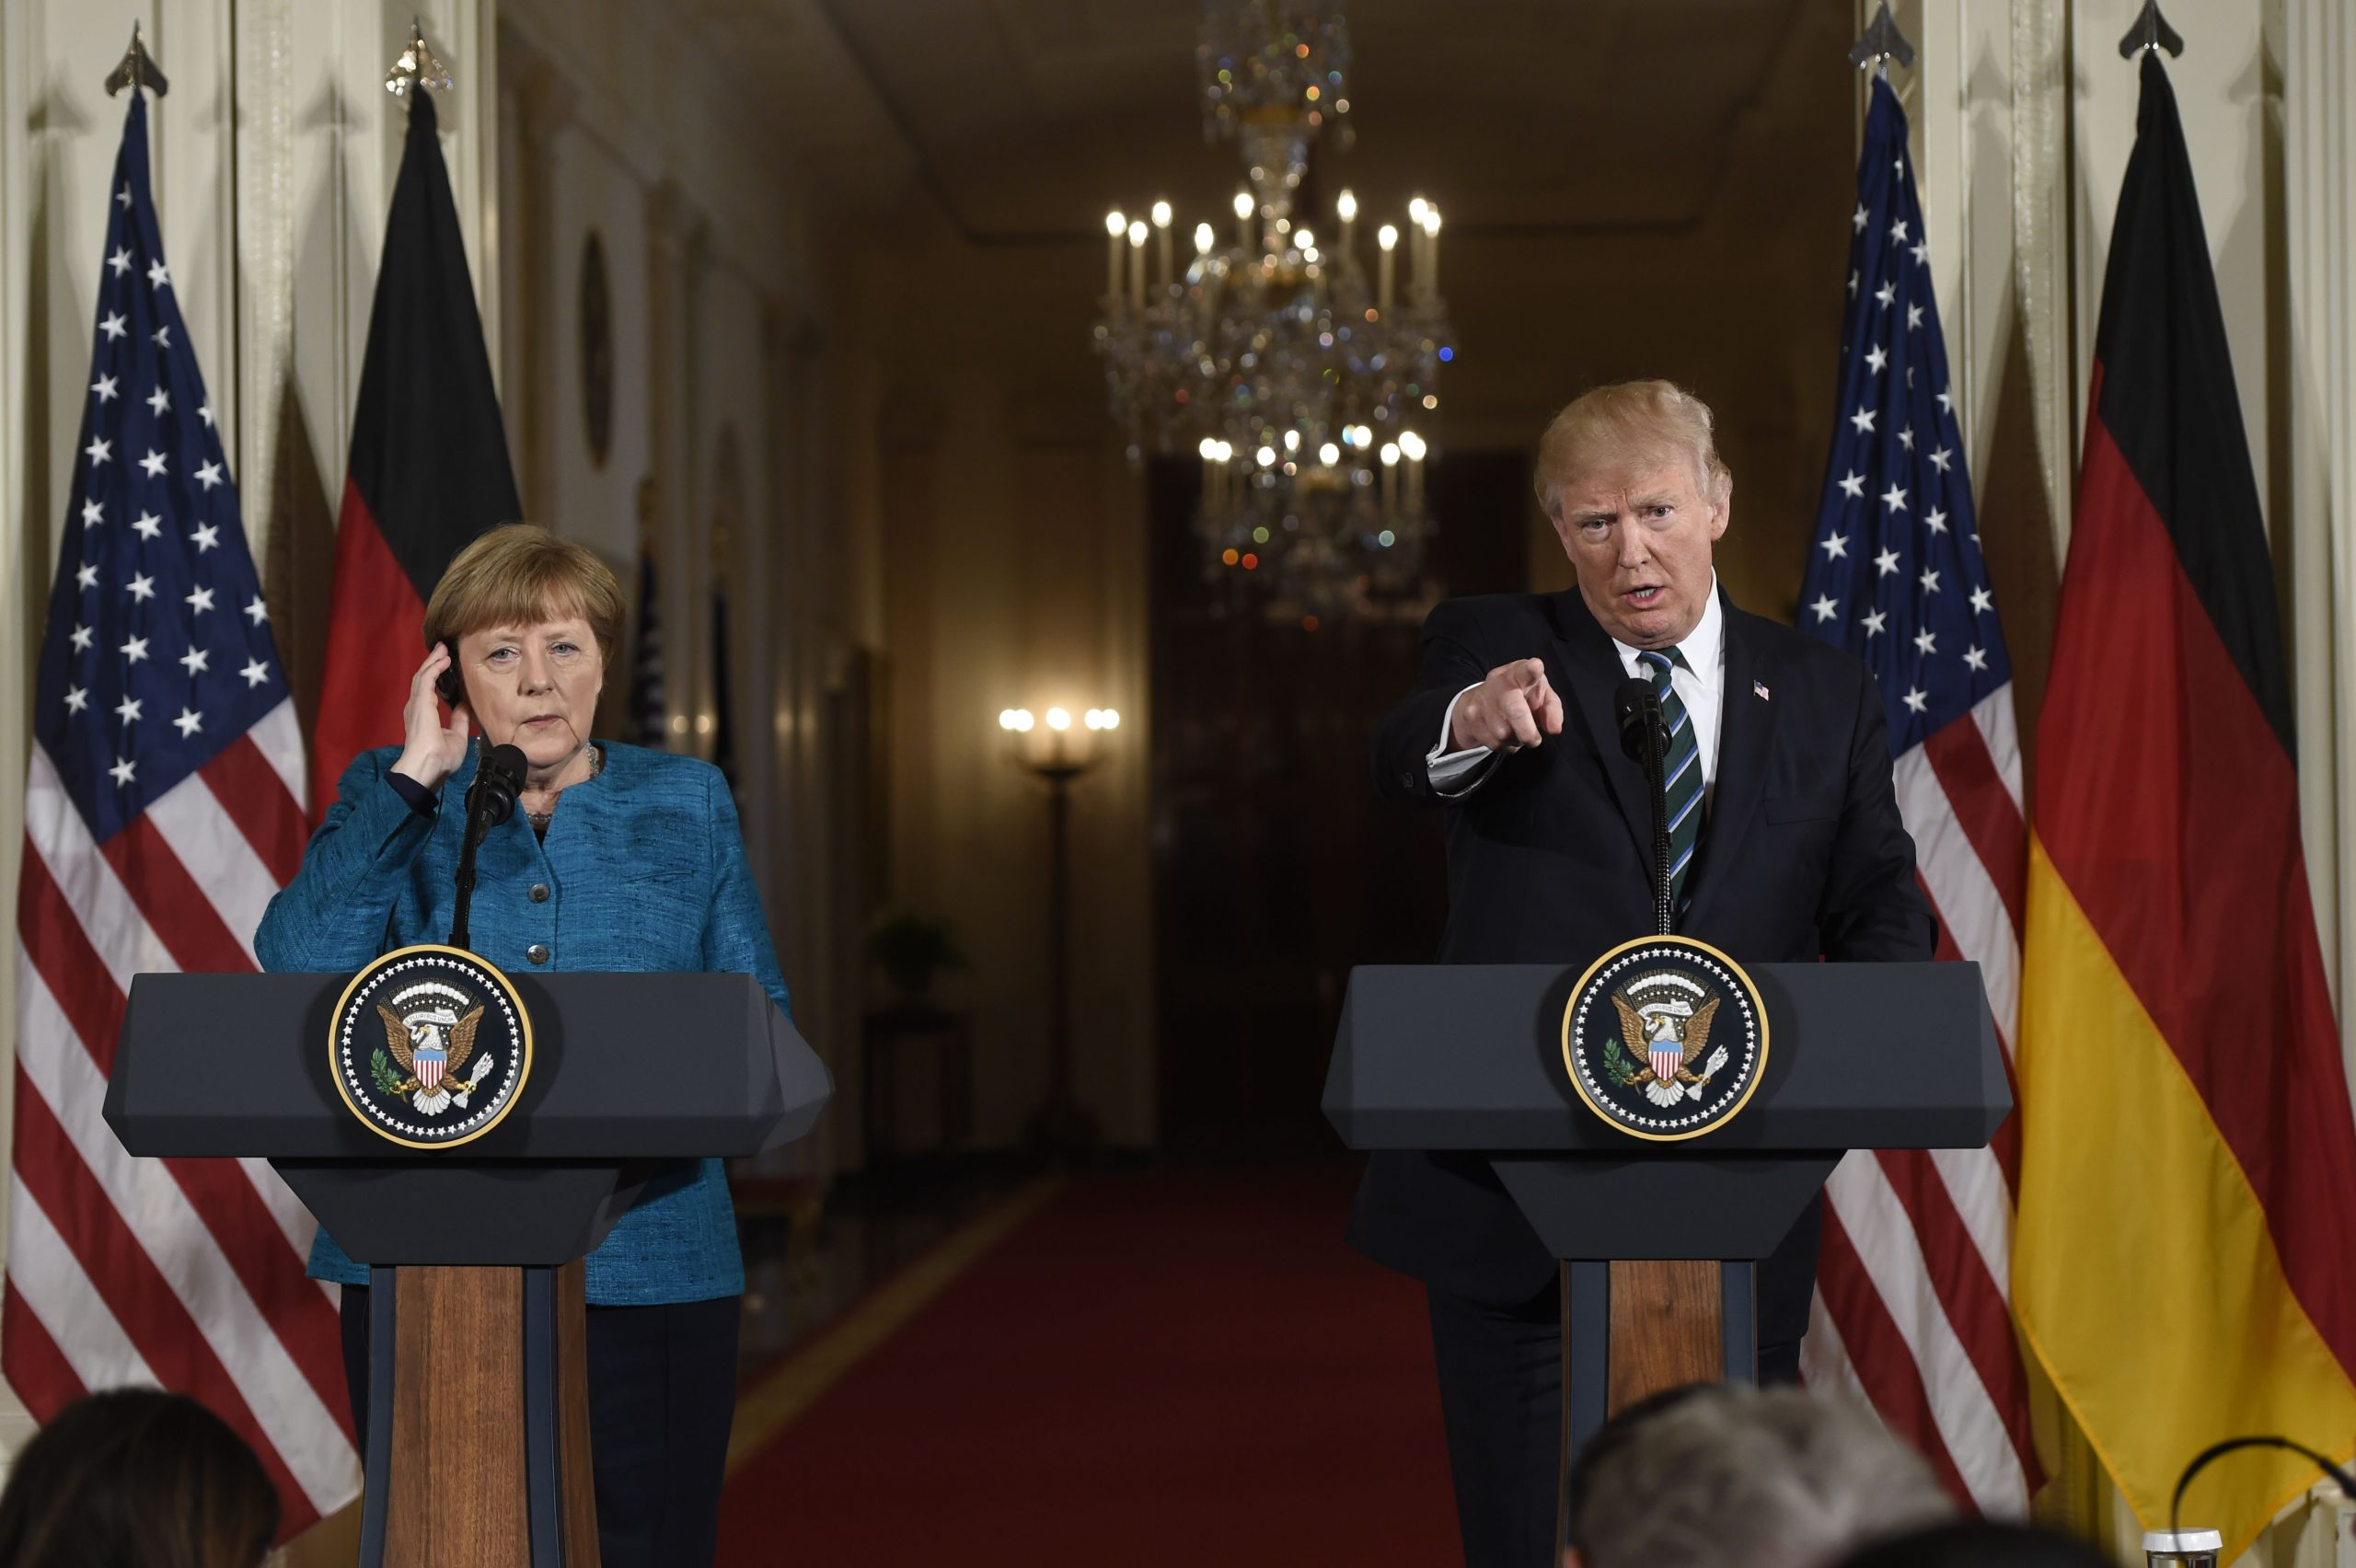 President Donald Trump and German Chancellor Angela Merkel hold a joint press conference in the East Room of the White House, March 17, 2017. (Saul Loeb/Getty Images)